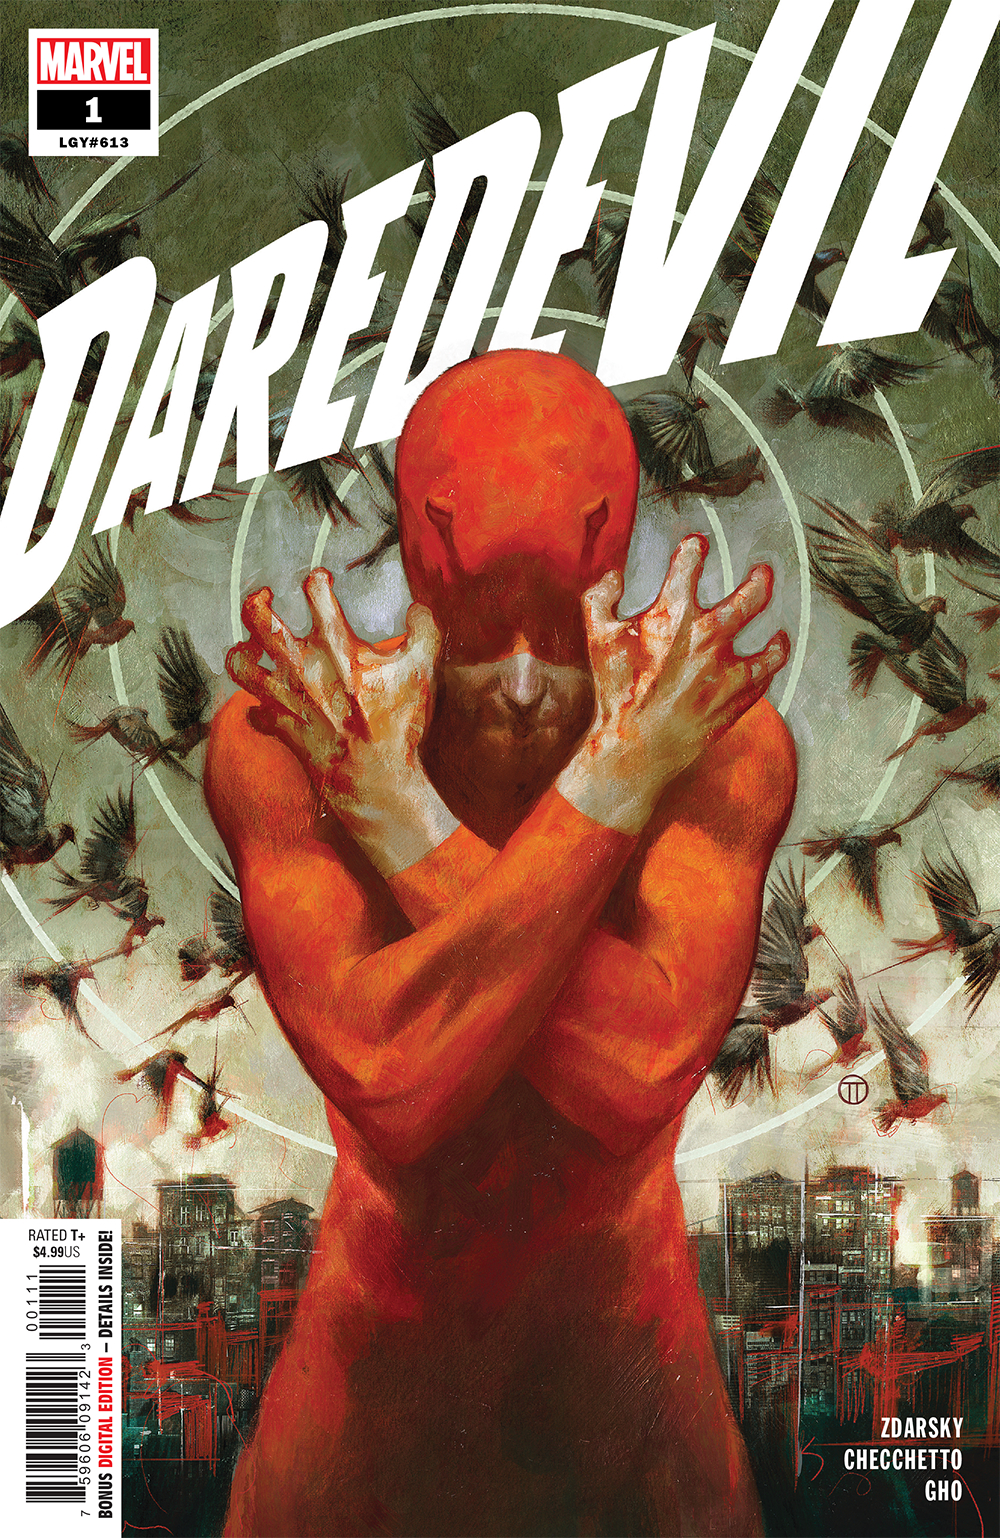 Daredevil #1  is out 2/6/2019.